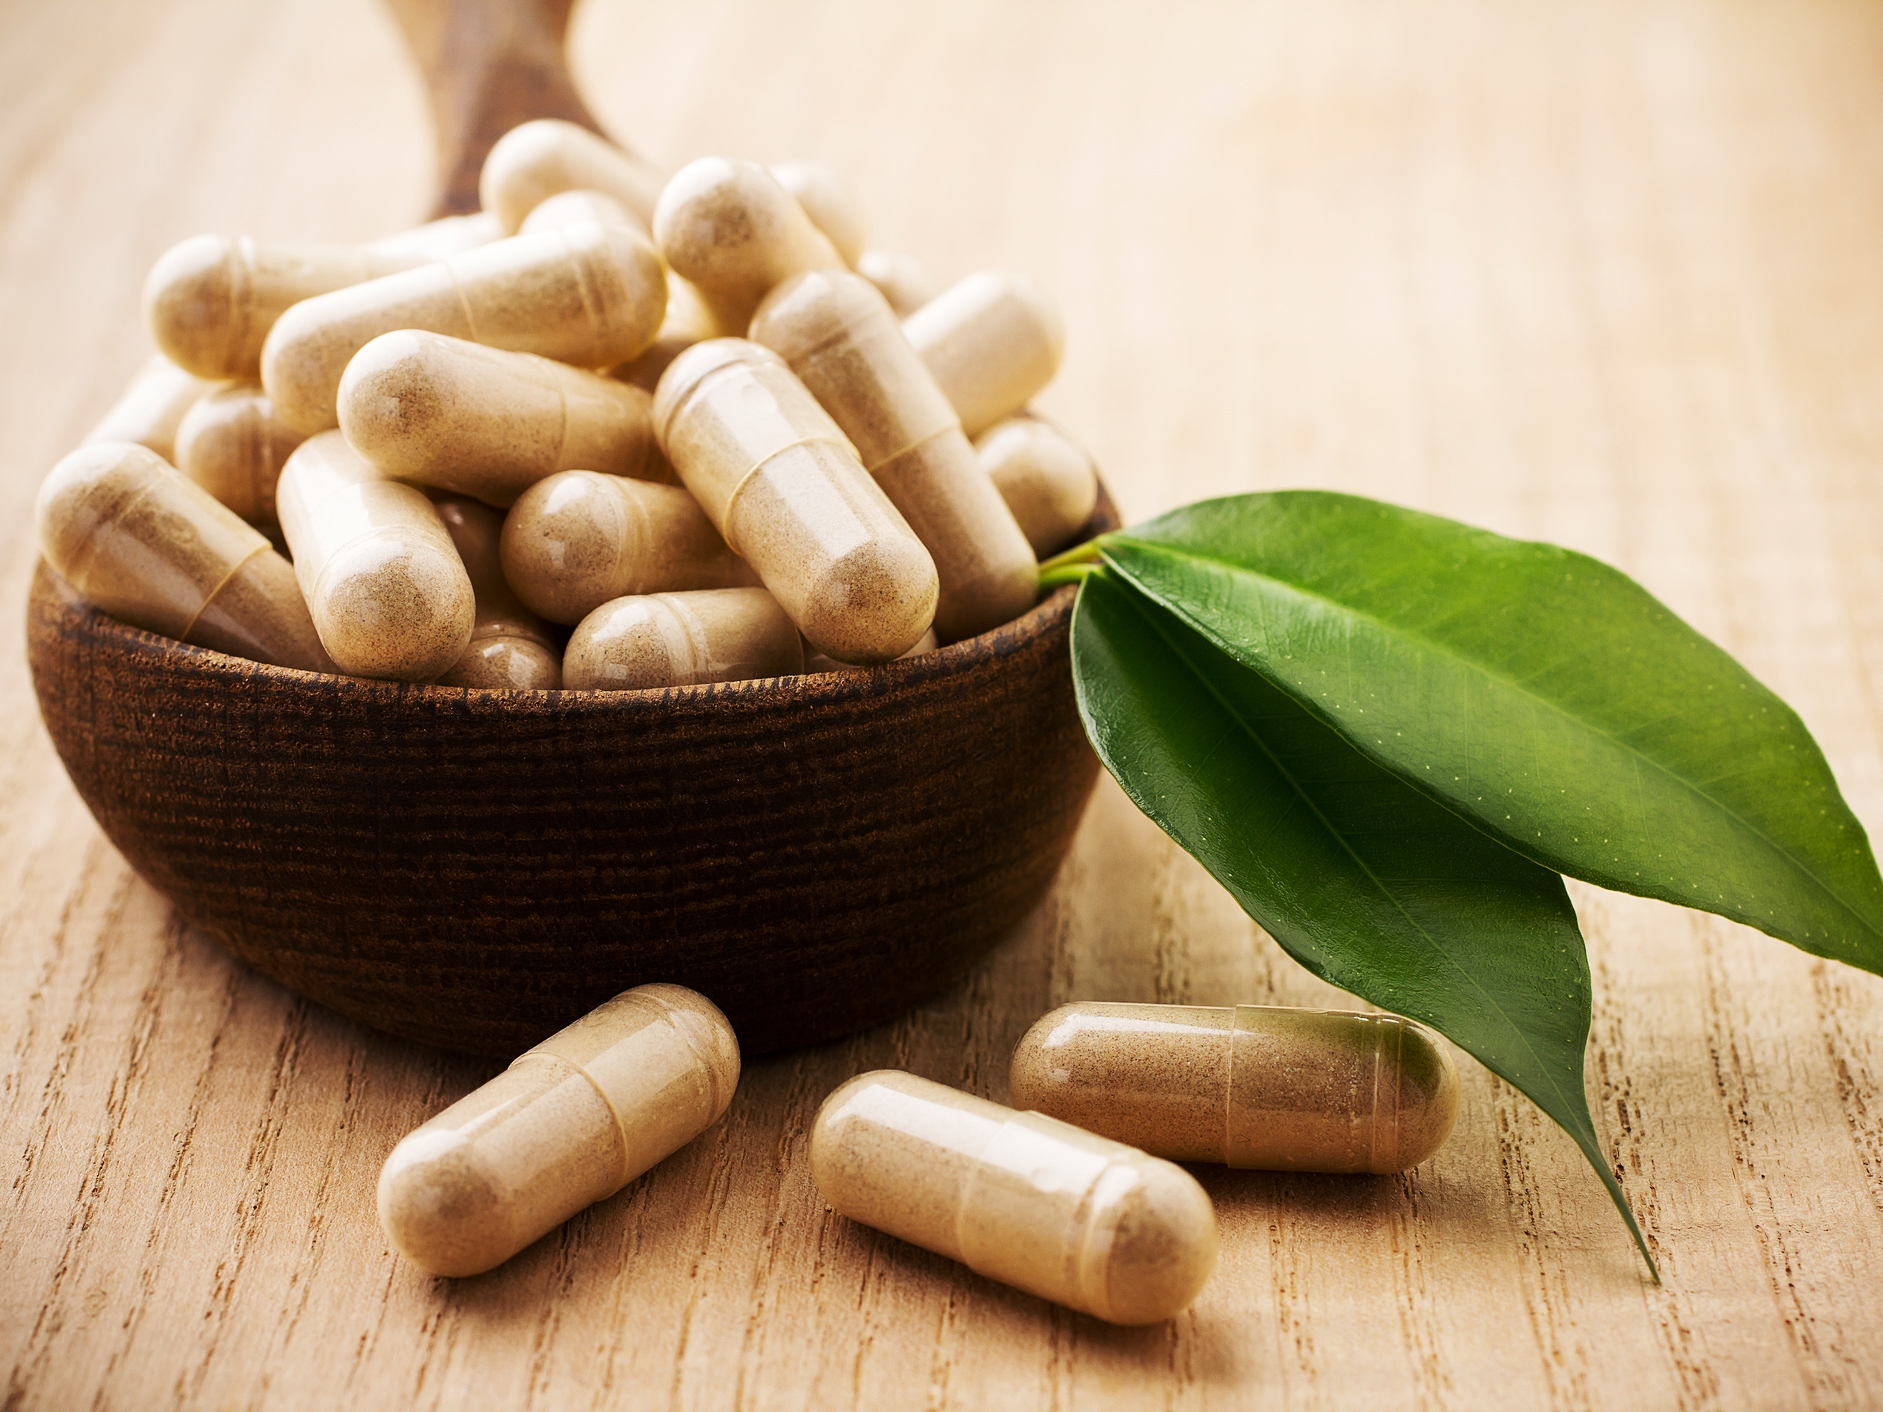 Qi Deficiency: Symptoms, Treatment, and More